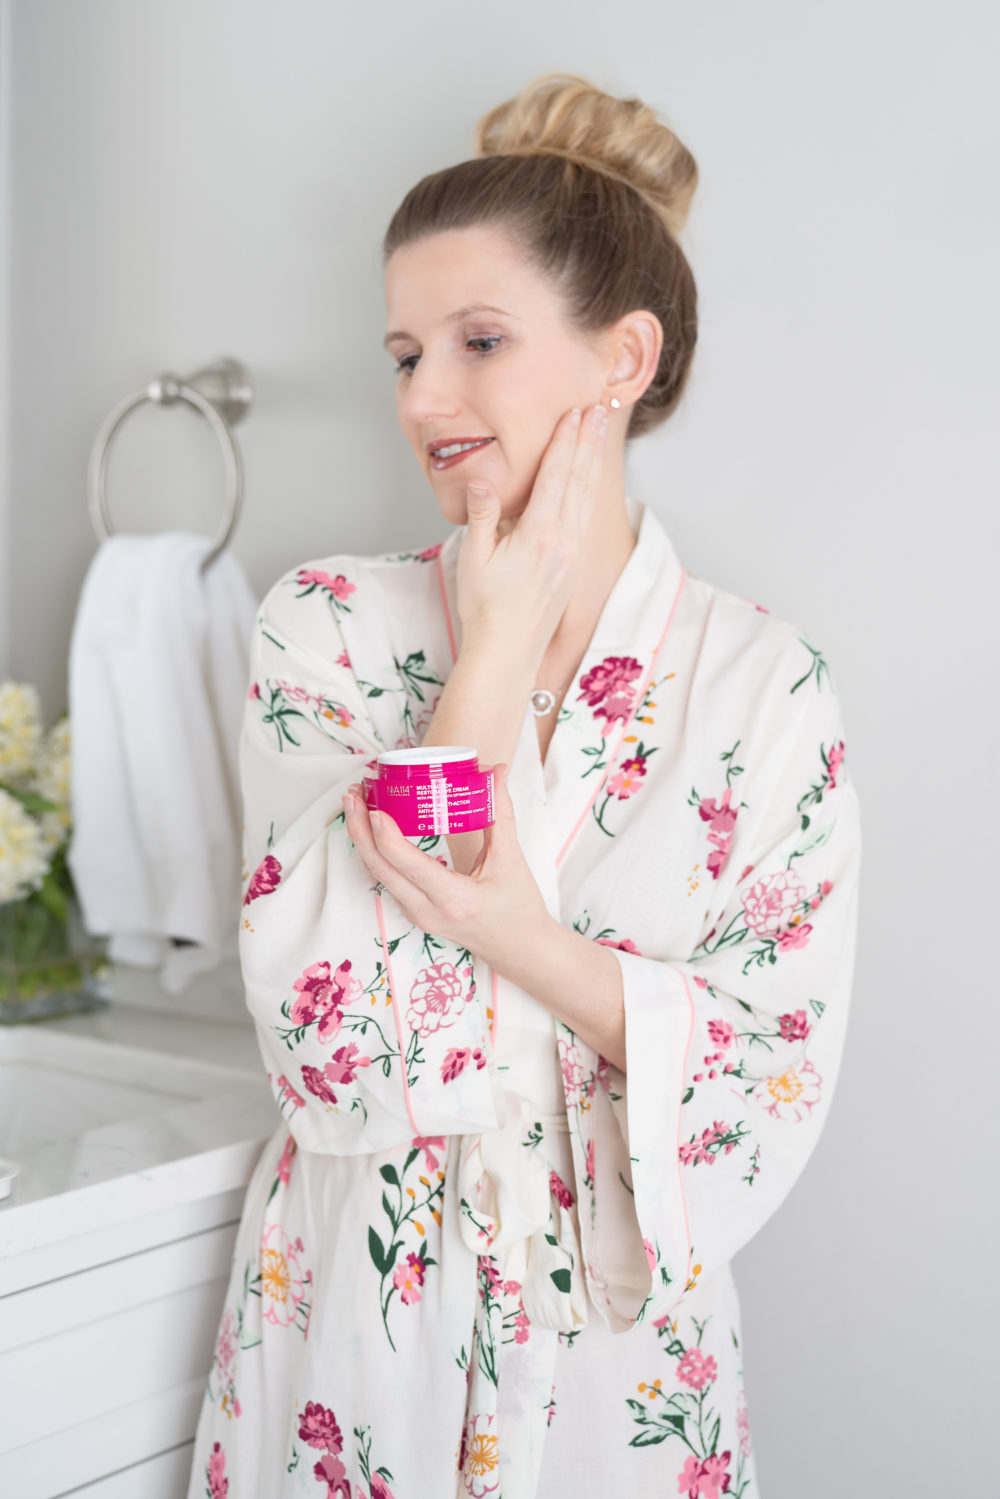 Petite Fashion and Style Blog | Strivectin Multi-Action Restorative Skin Firming Cream | Strivectin Intensive Eye Cream for Wrinkles | Strivectin STAR Light Retinol Night Oil | Strivectin Moisture Melting Cleanser